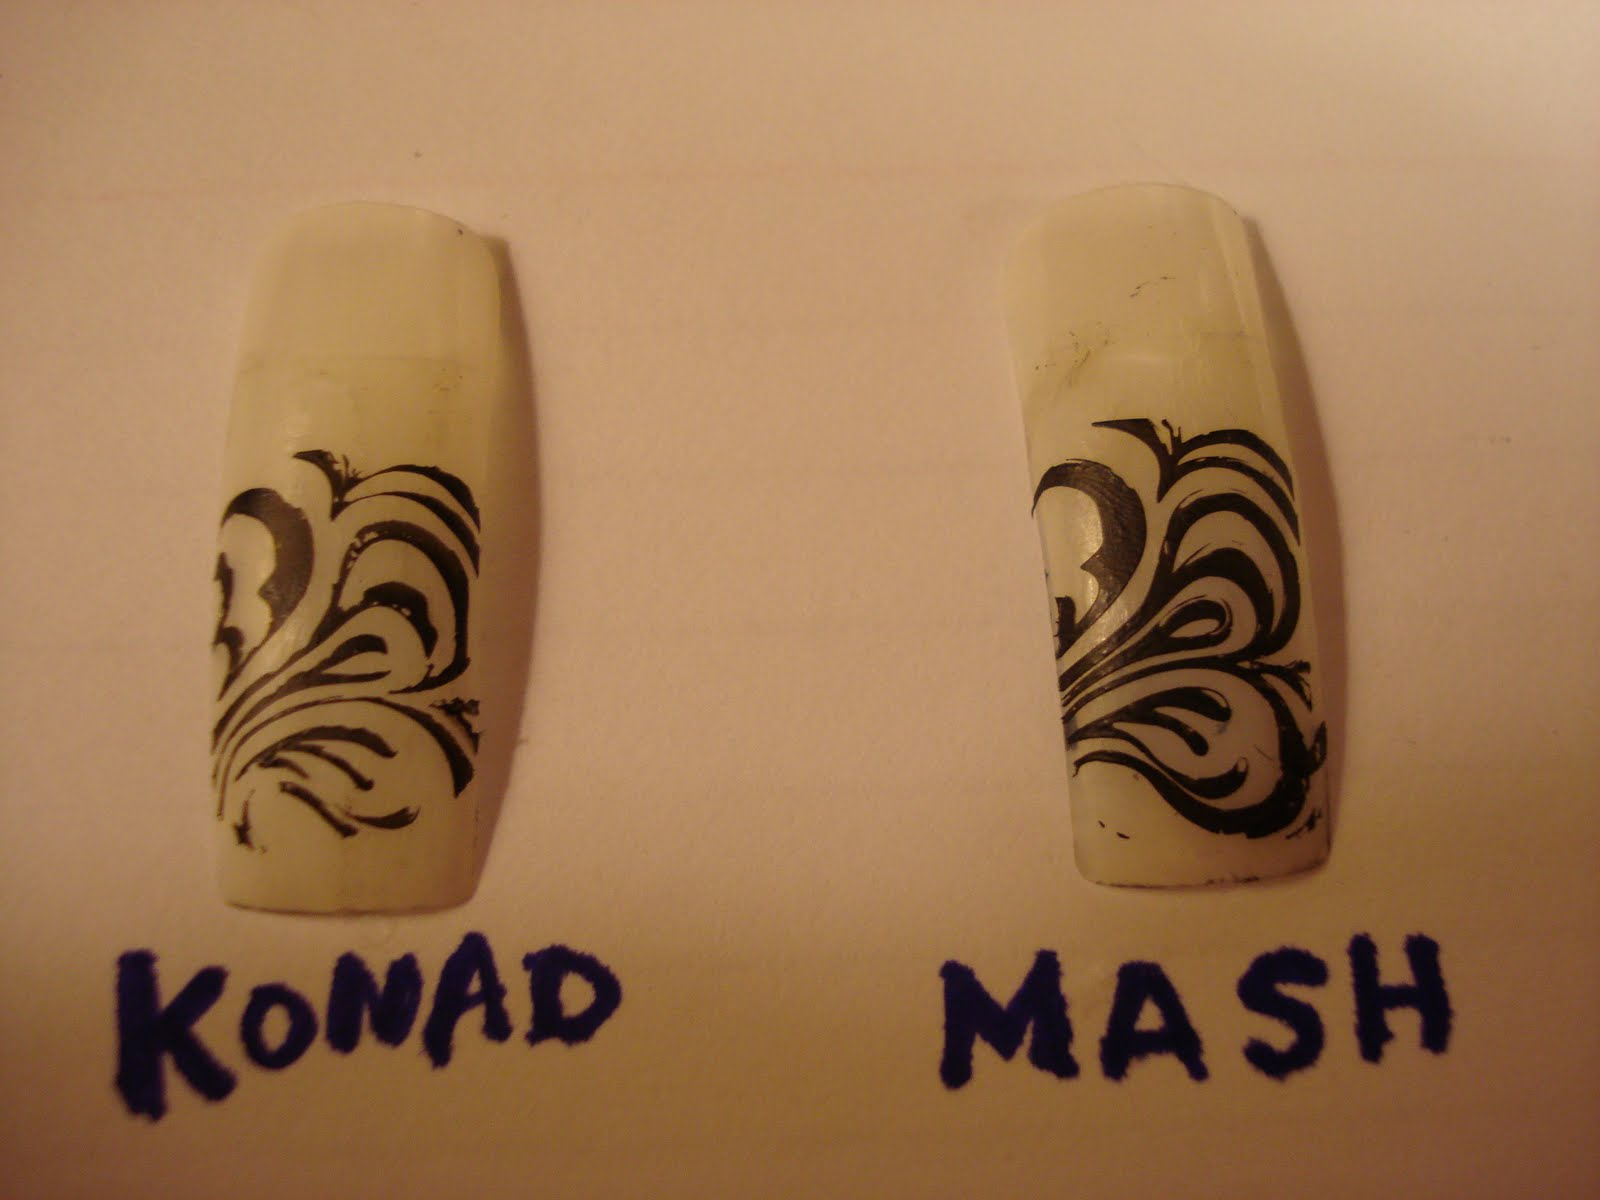 Loveable Nails: Konad vs Mash nail plates (Part 2)